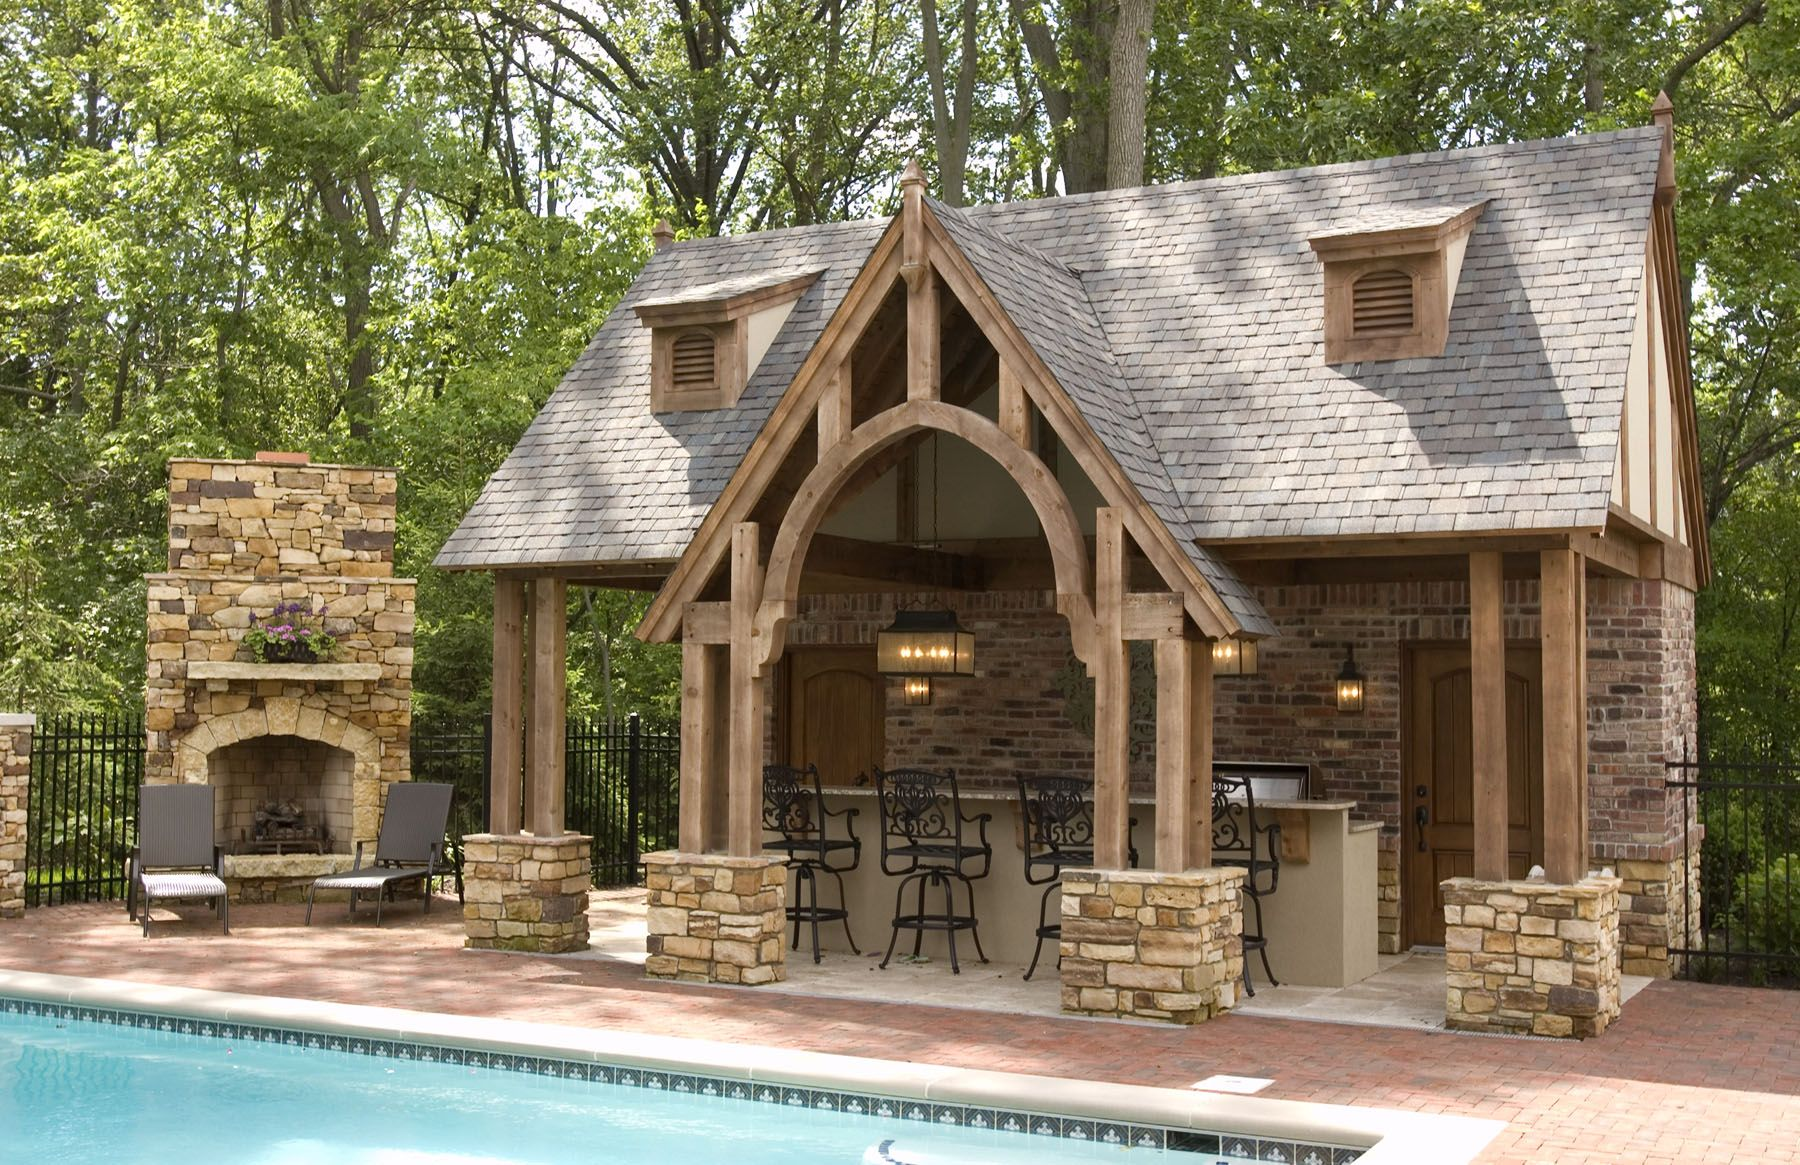 Pool And Outdoor Kitchen Designs Outdoor Pool And Fireplace Designs  Outdoor Kitchen And Pool